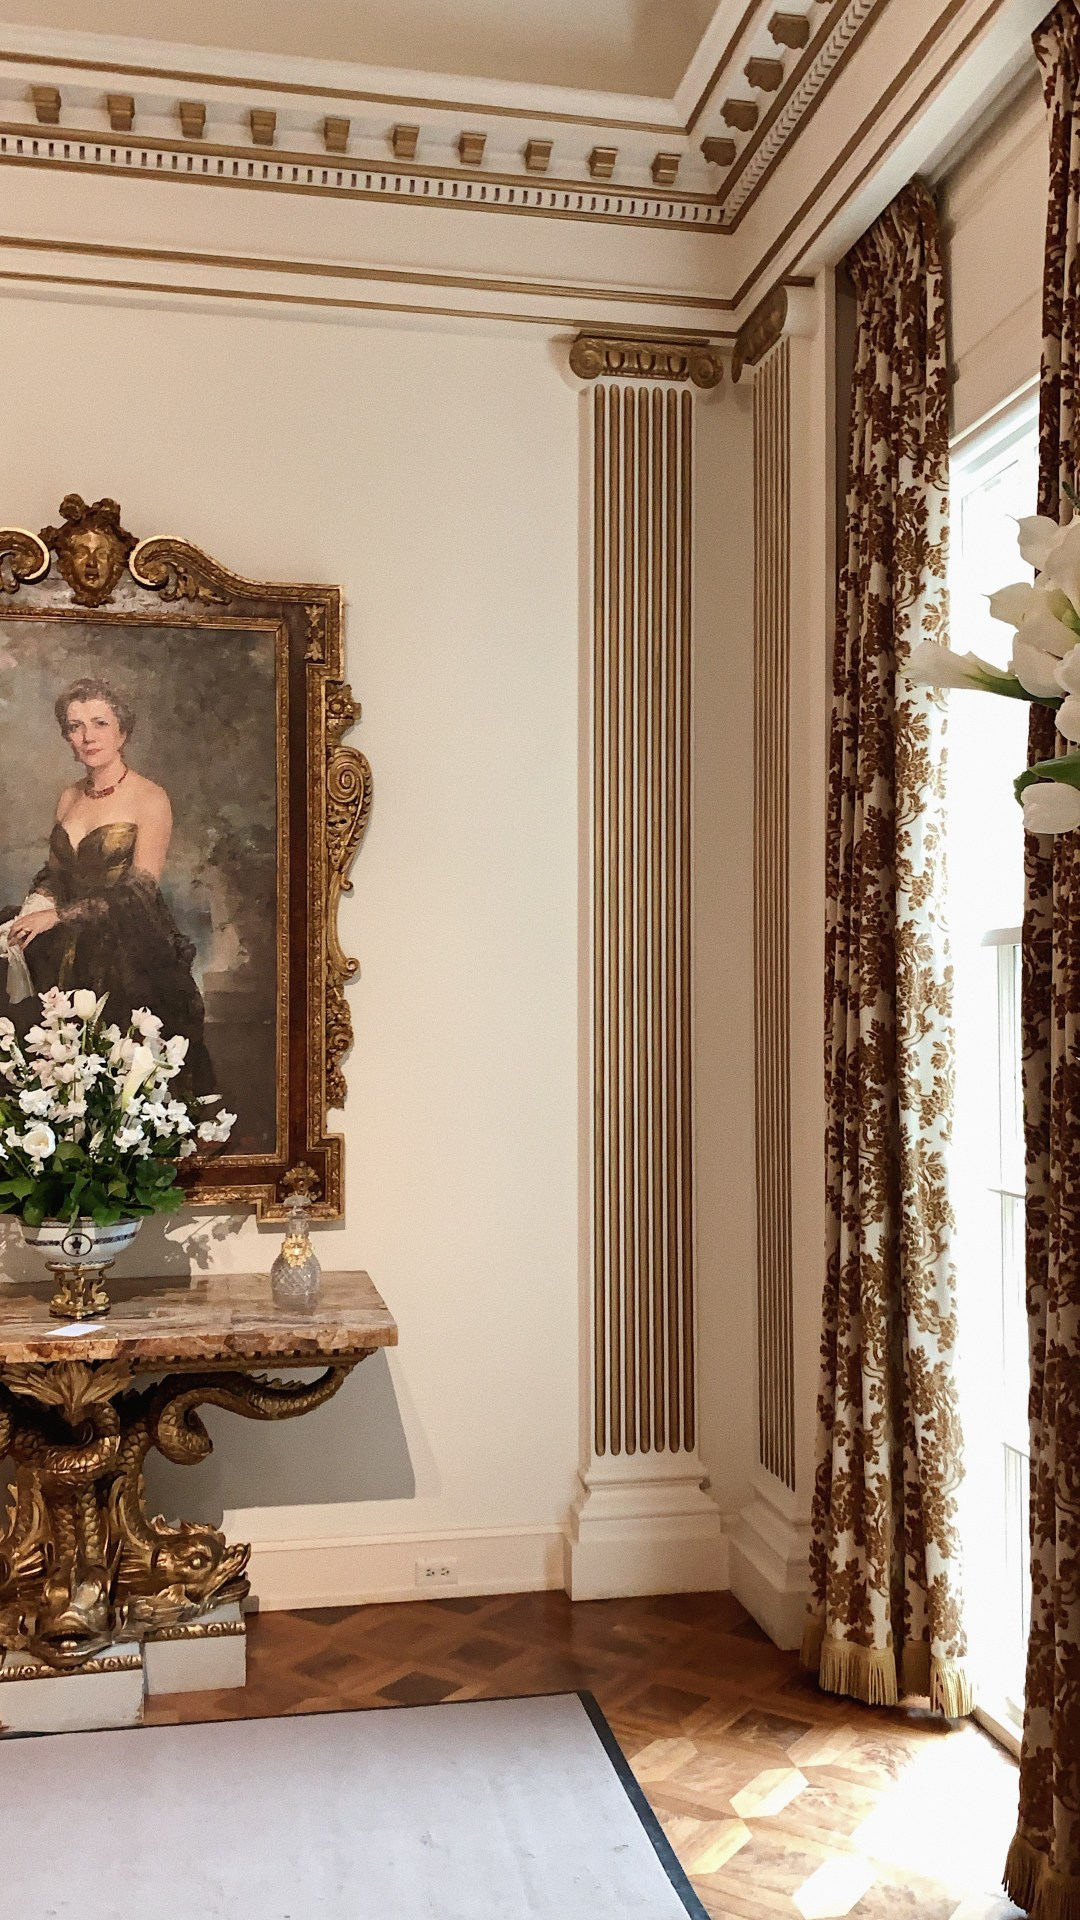 Houston formal homes, historical home tours